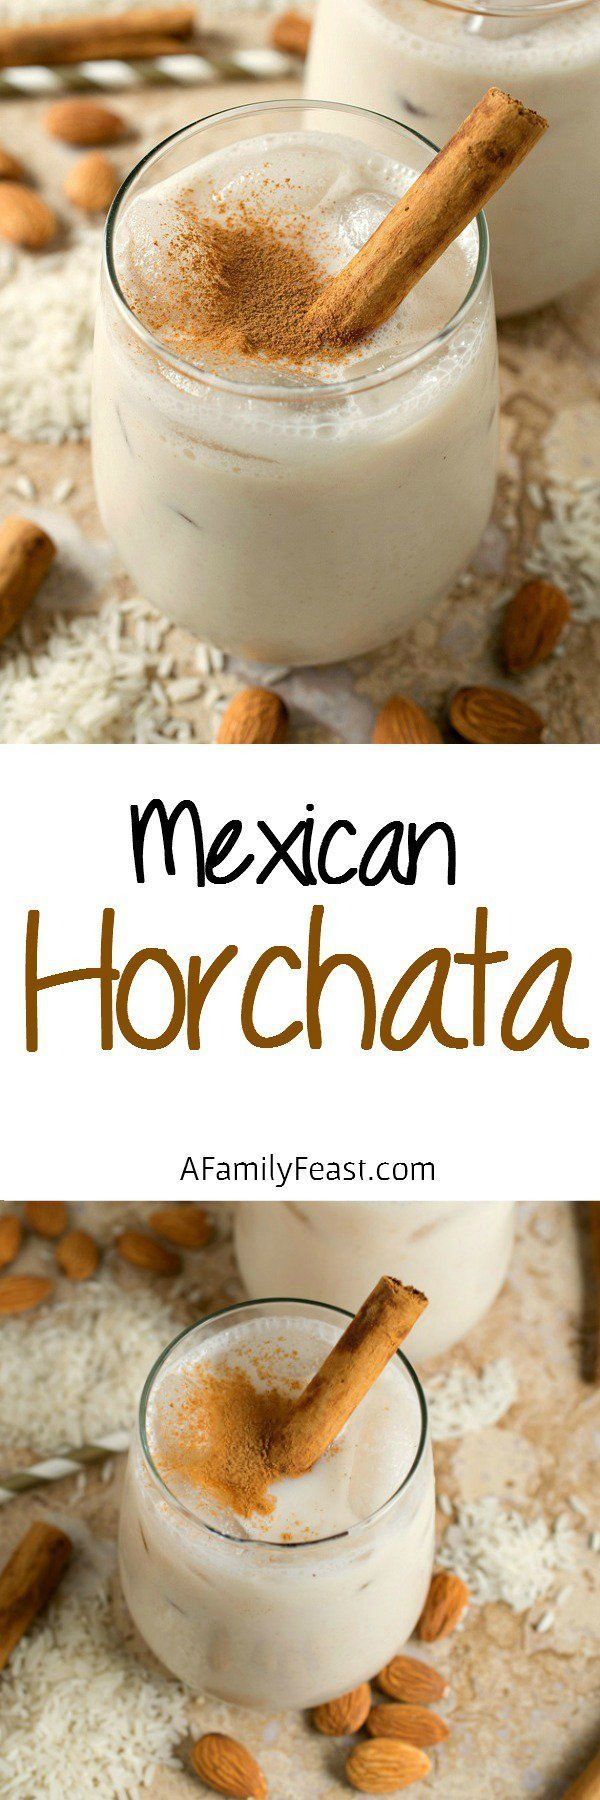 Horchata - A refreshing and lightly sweet Mexican rice and almond beverage flavored with cinnamon. Delicious!